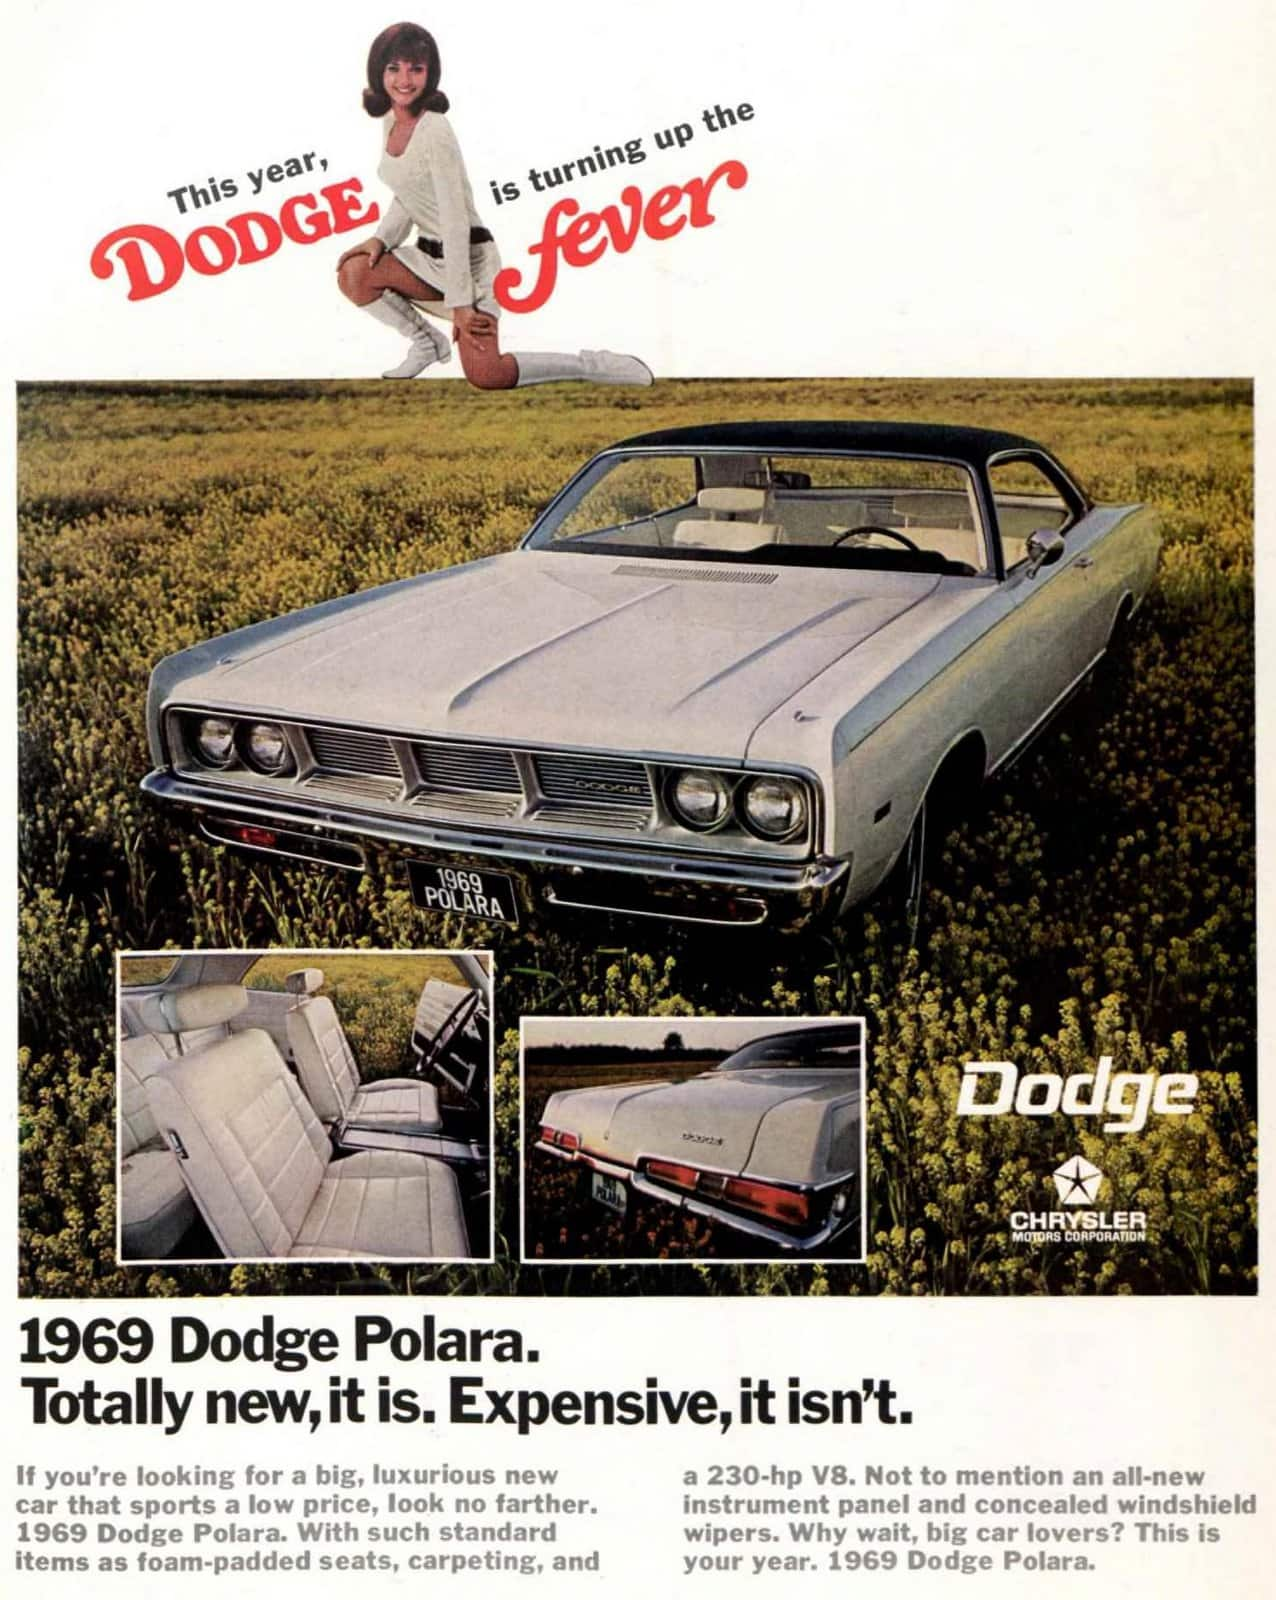 1969 Dodge Polara cars